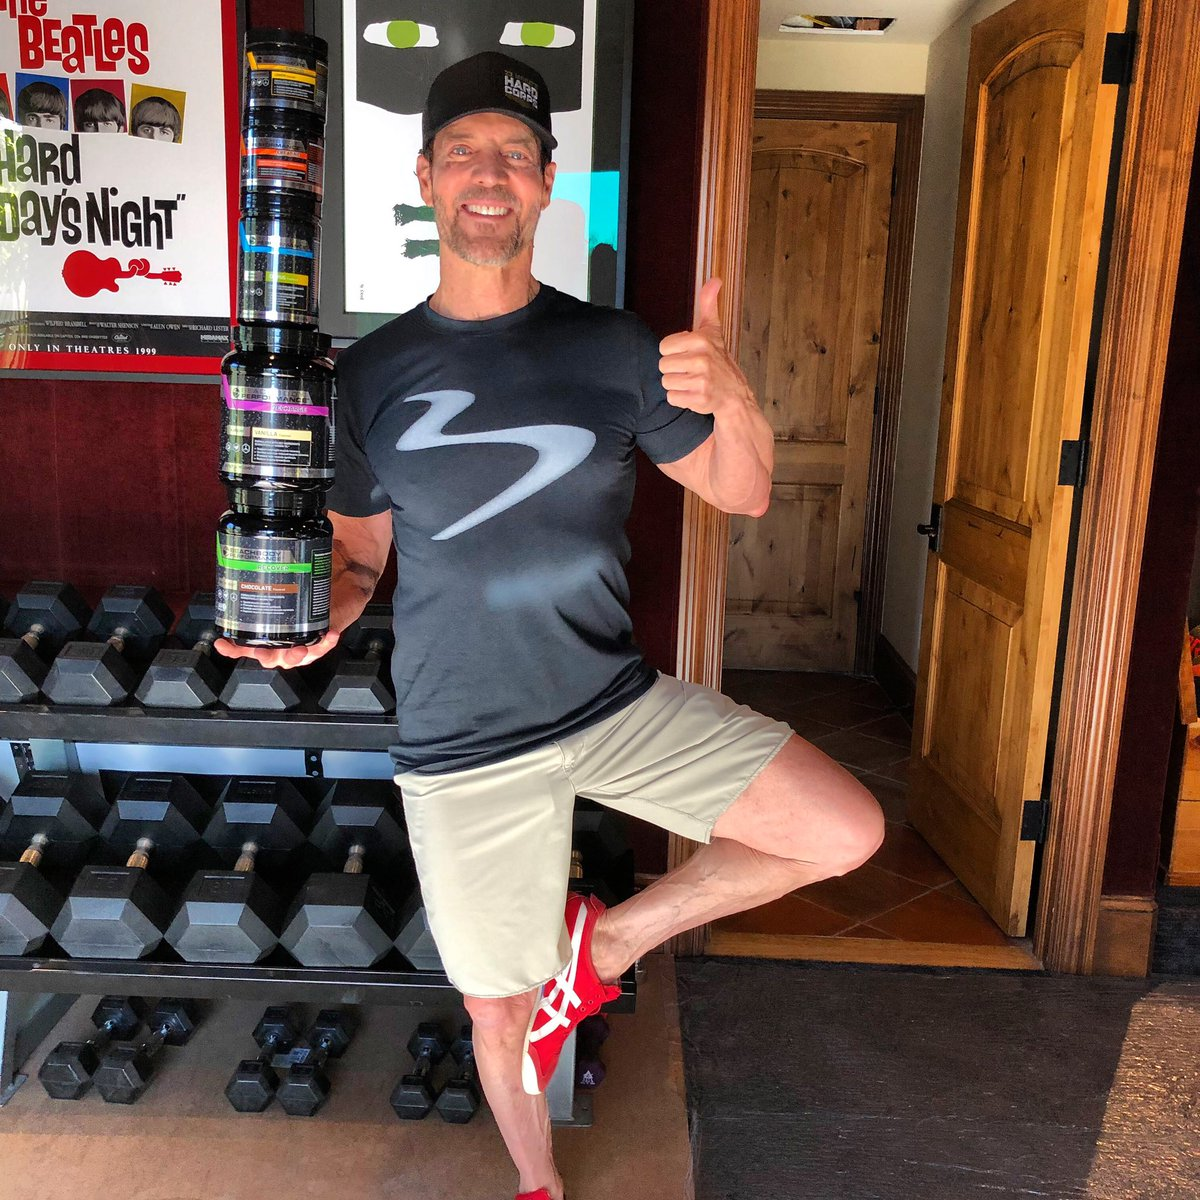 Beachbody Performance does this 60-year old body good #beachbodyperformance #beachbody